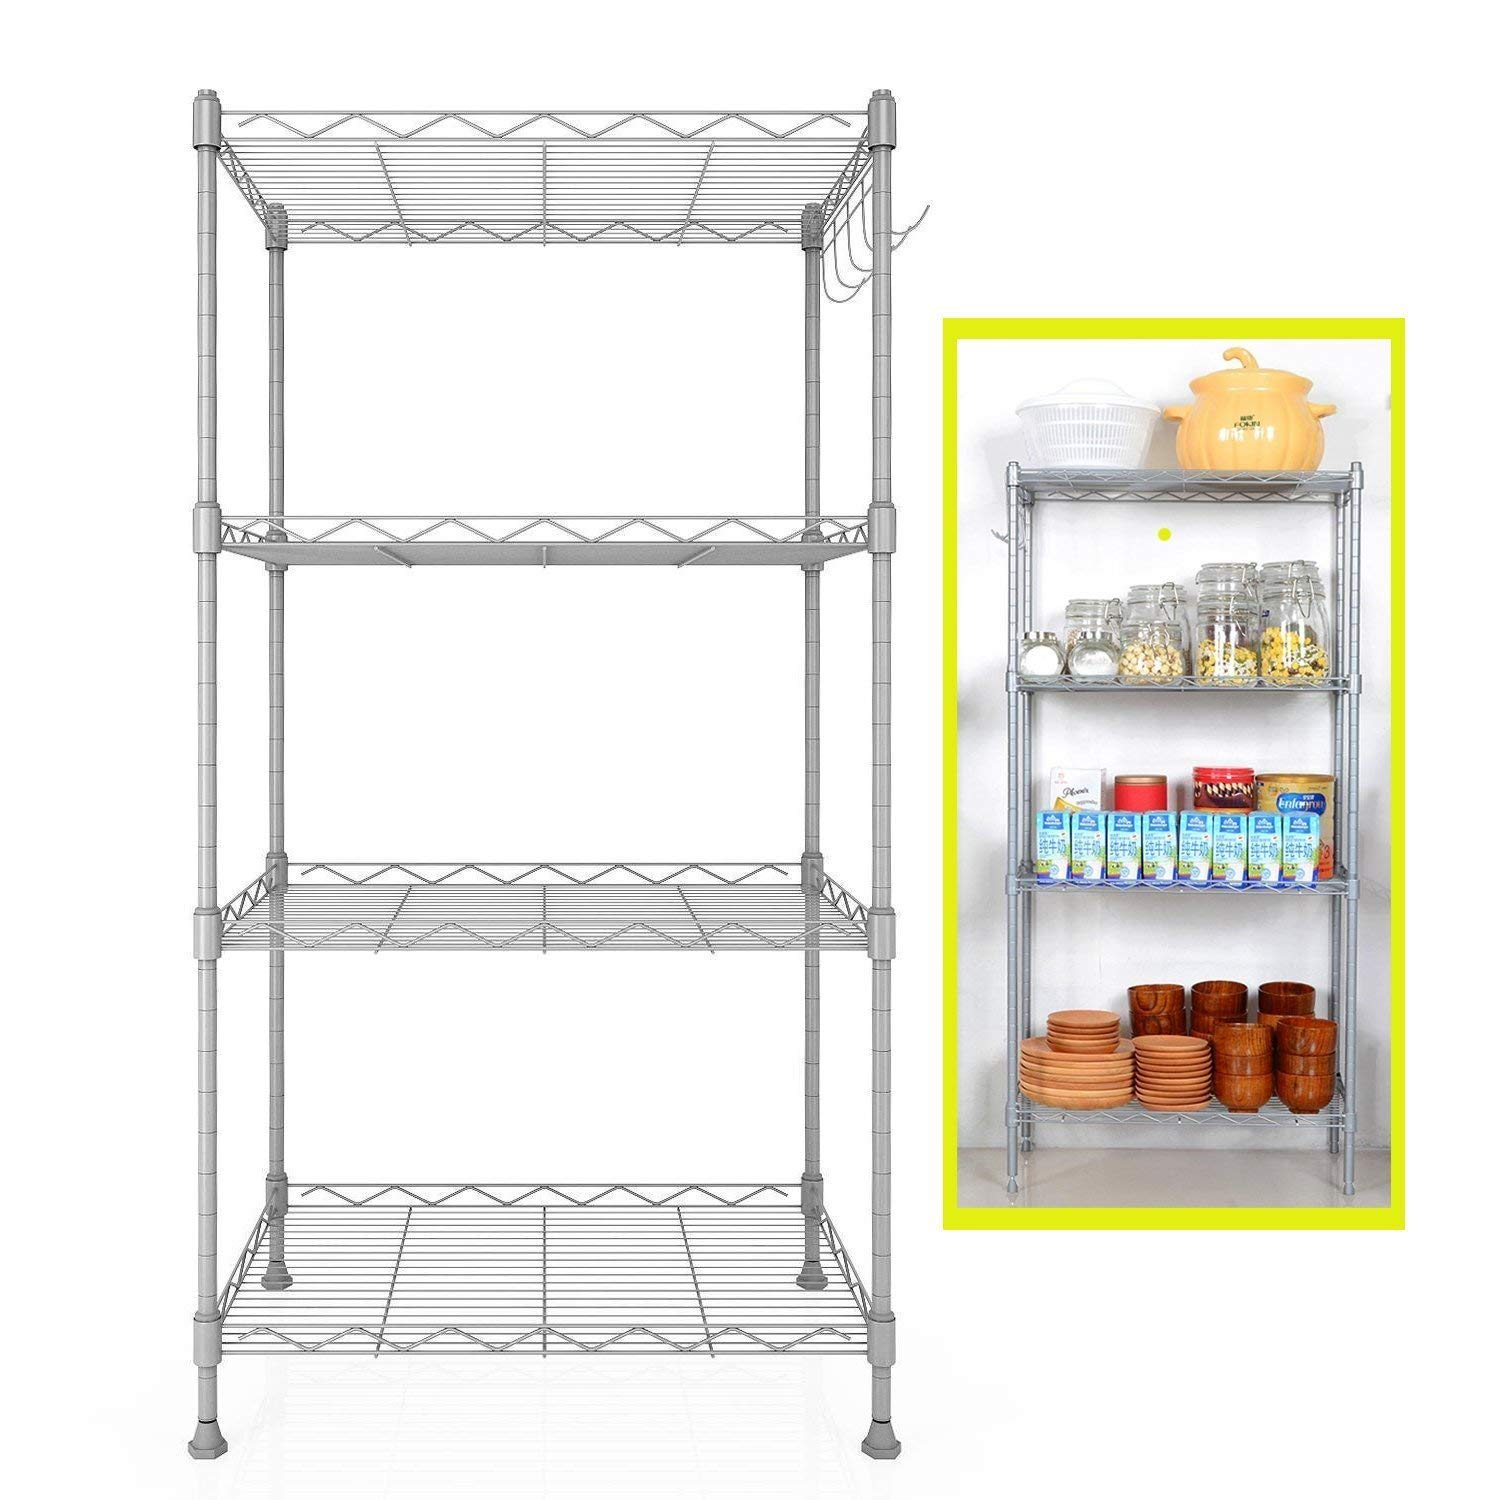 Keland (US STOCK) Stainless Steel Wire Shelving Units, 4-Tier Kitchen Wire Storage Racks Wire Mesh Shelving With Side Hooks for Office Living Room Garage Workshop